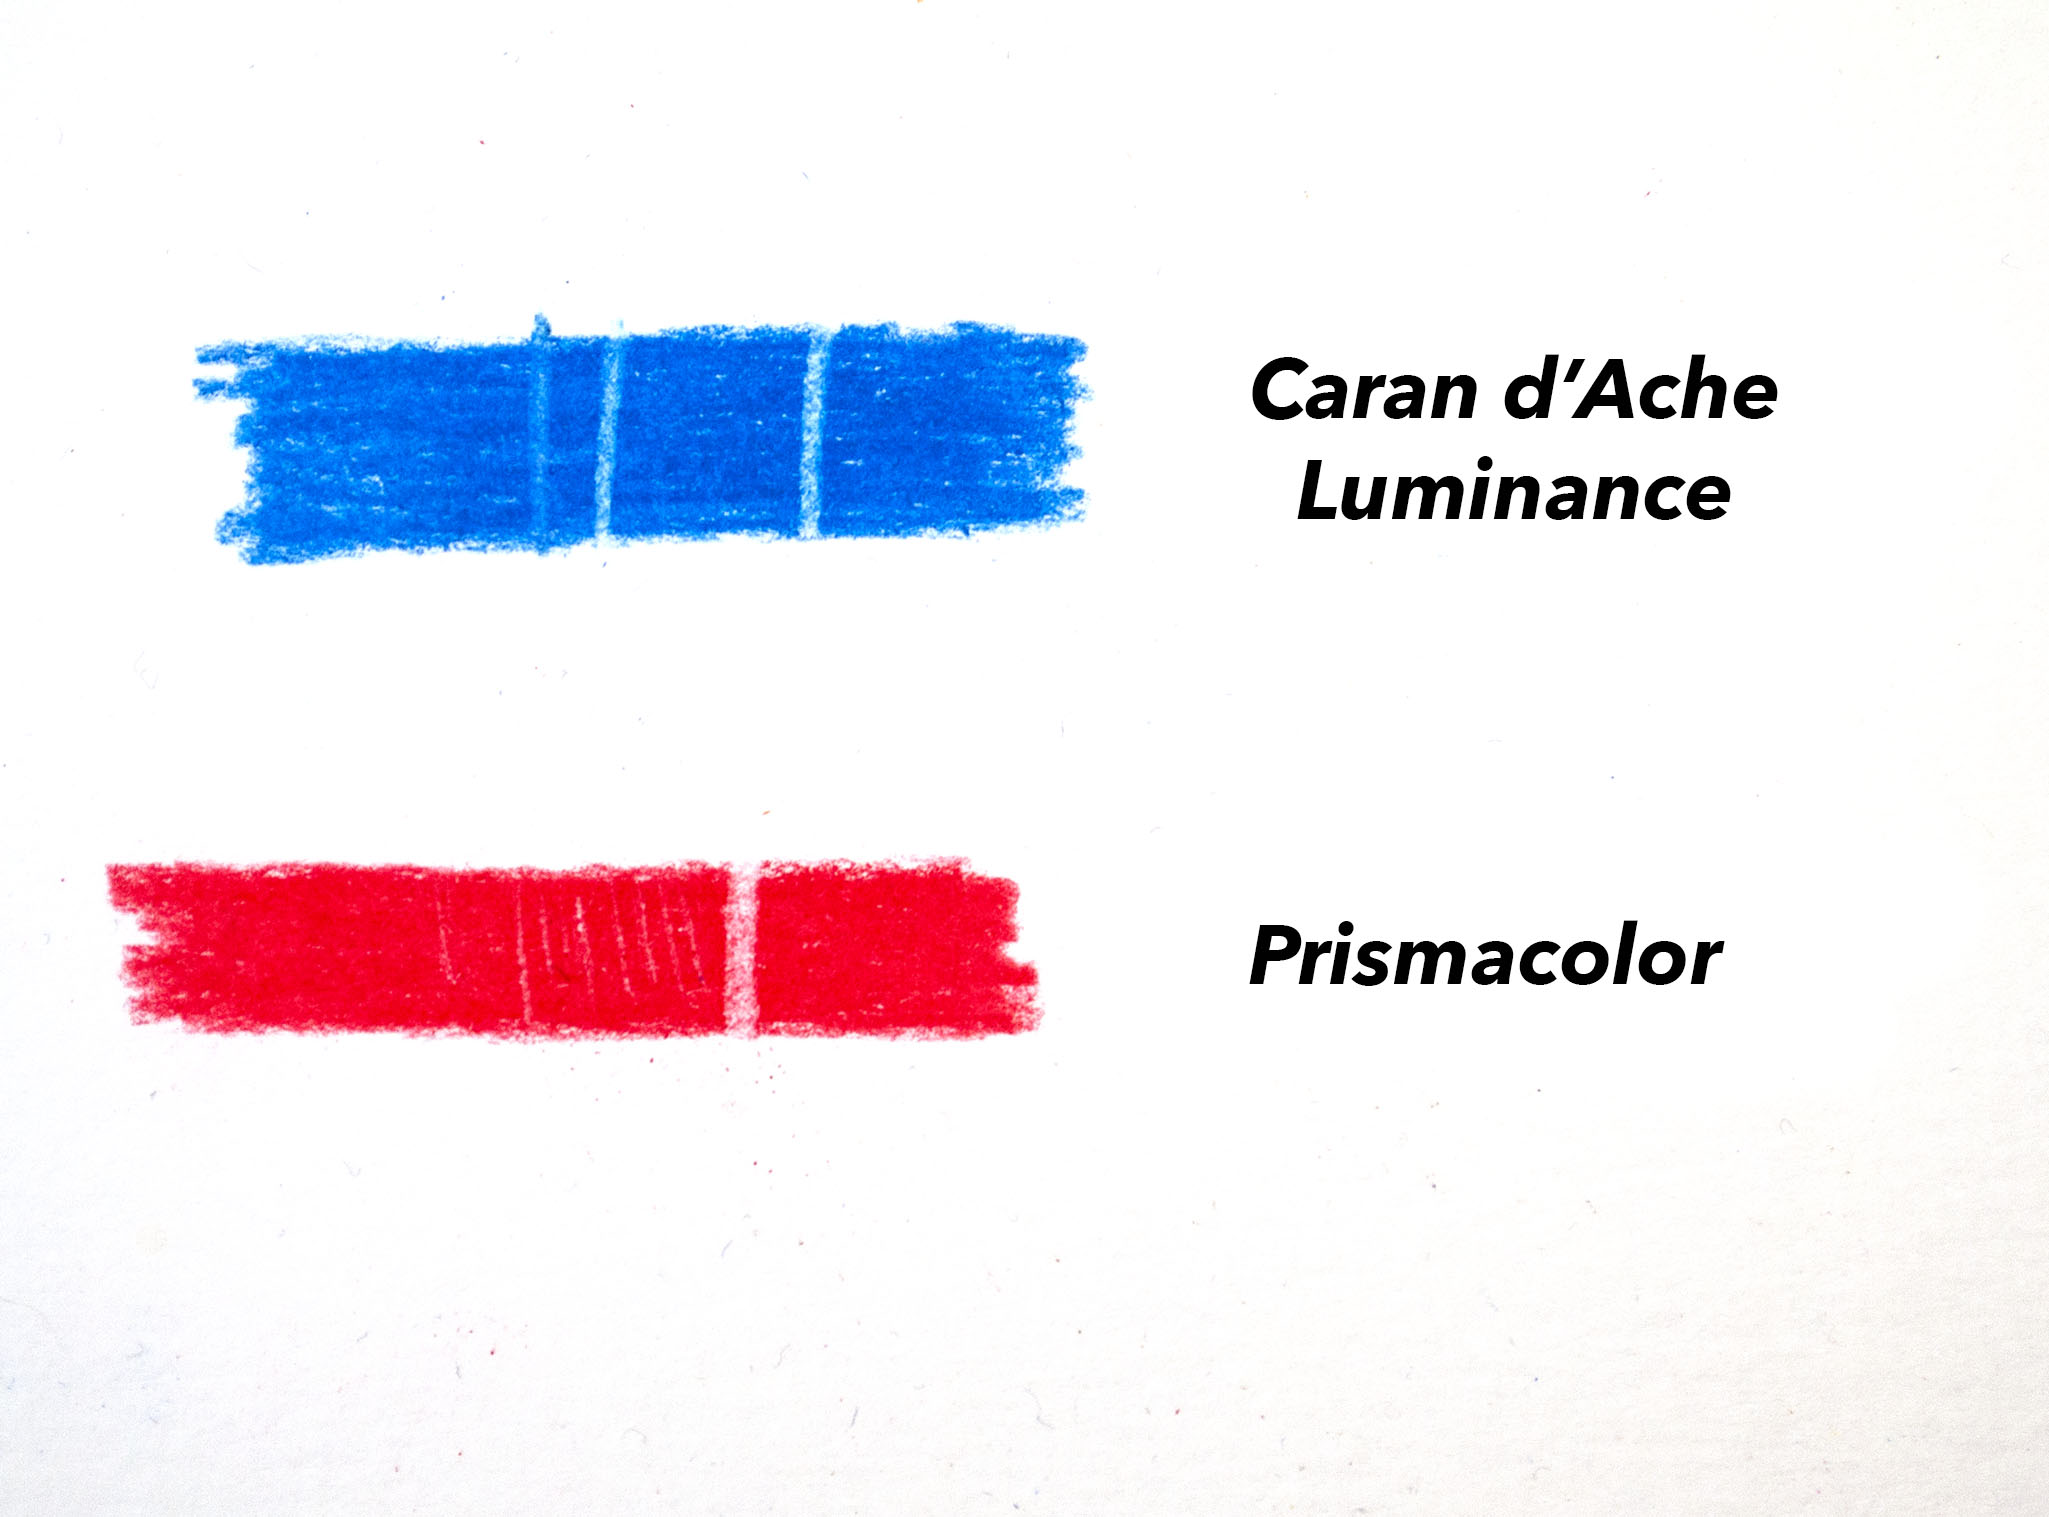 Luminance and Prismacolor.jpg